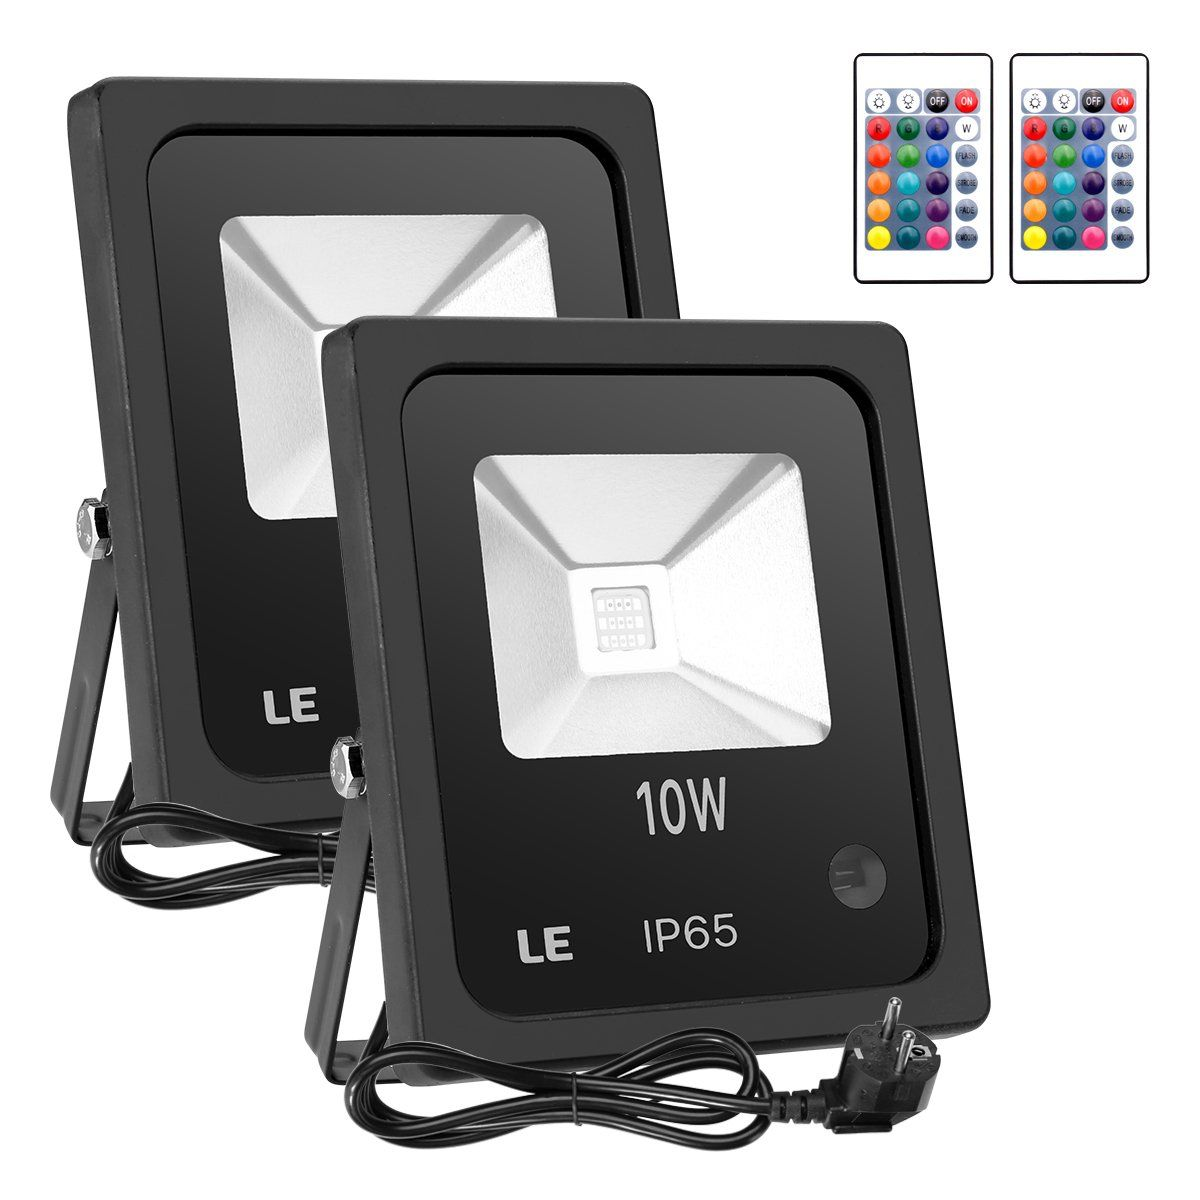 Le 10w rgb led flood lights outdoor color changing led security le 10w rgb led flood lights outdoor color changing led security light 16 colors mozeypictures Gallery